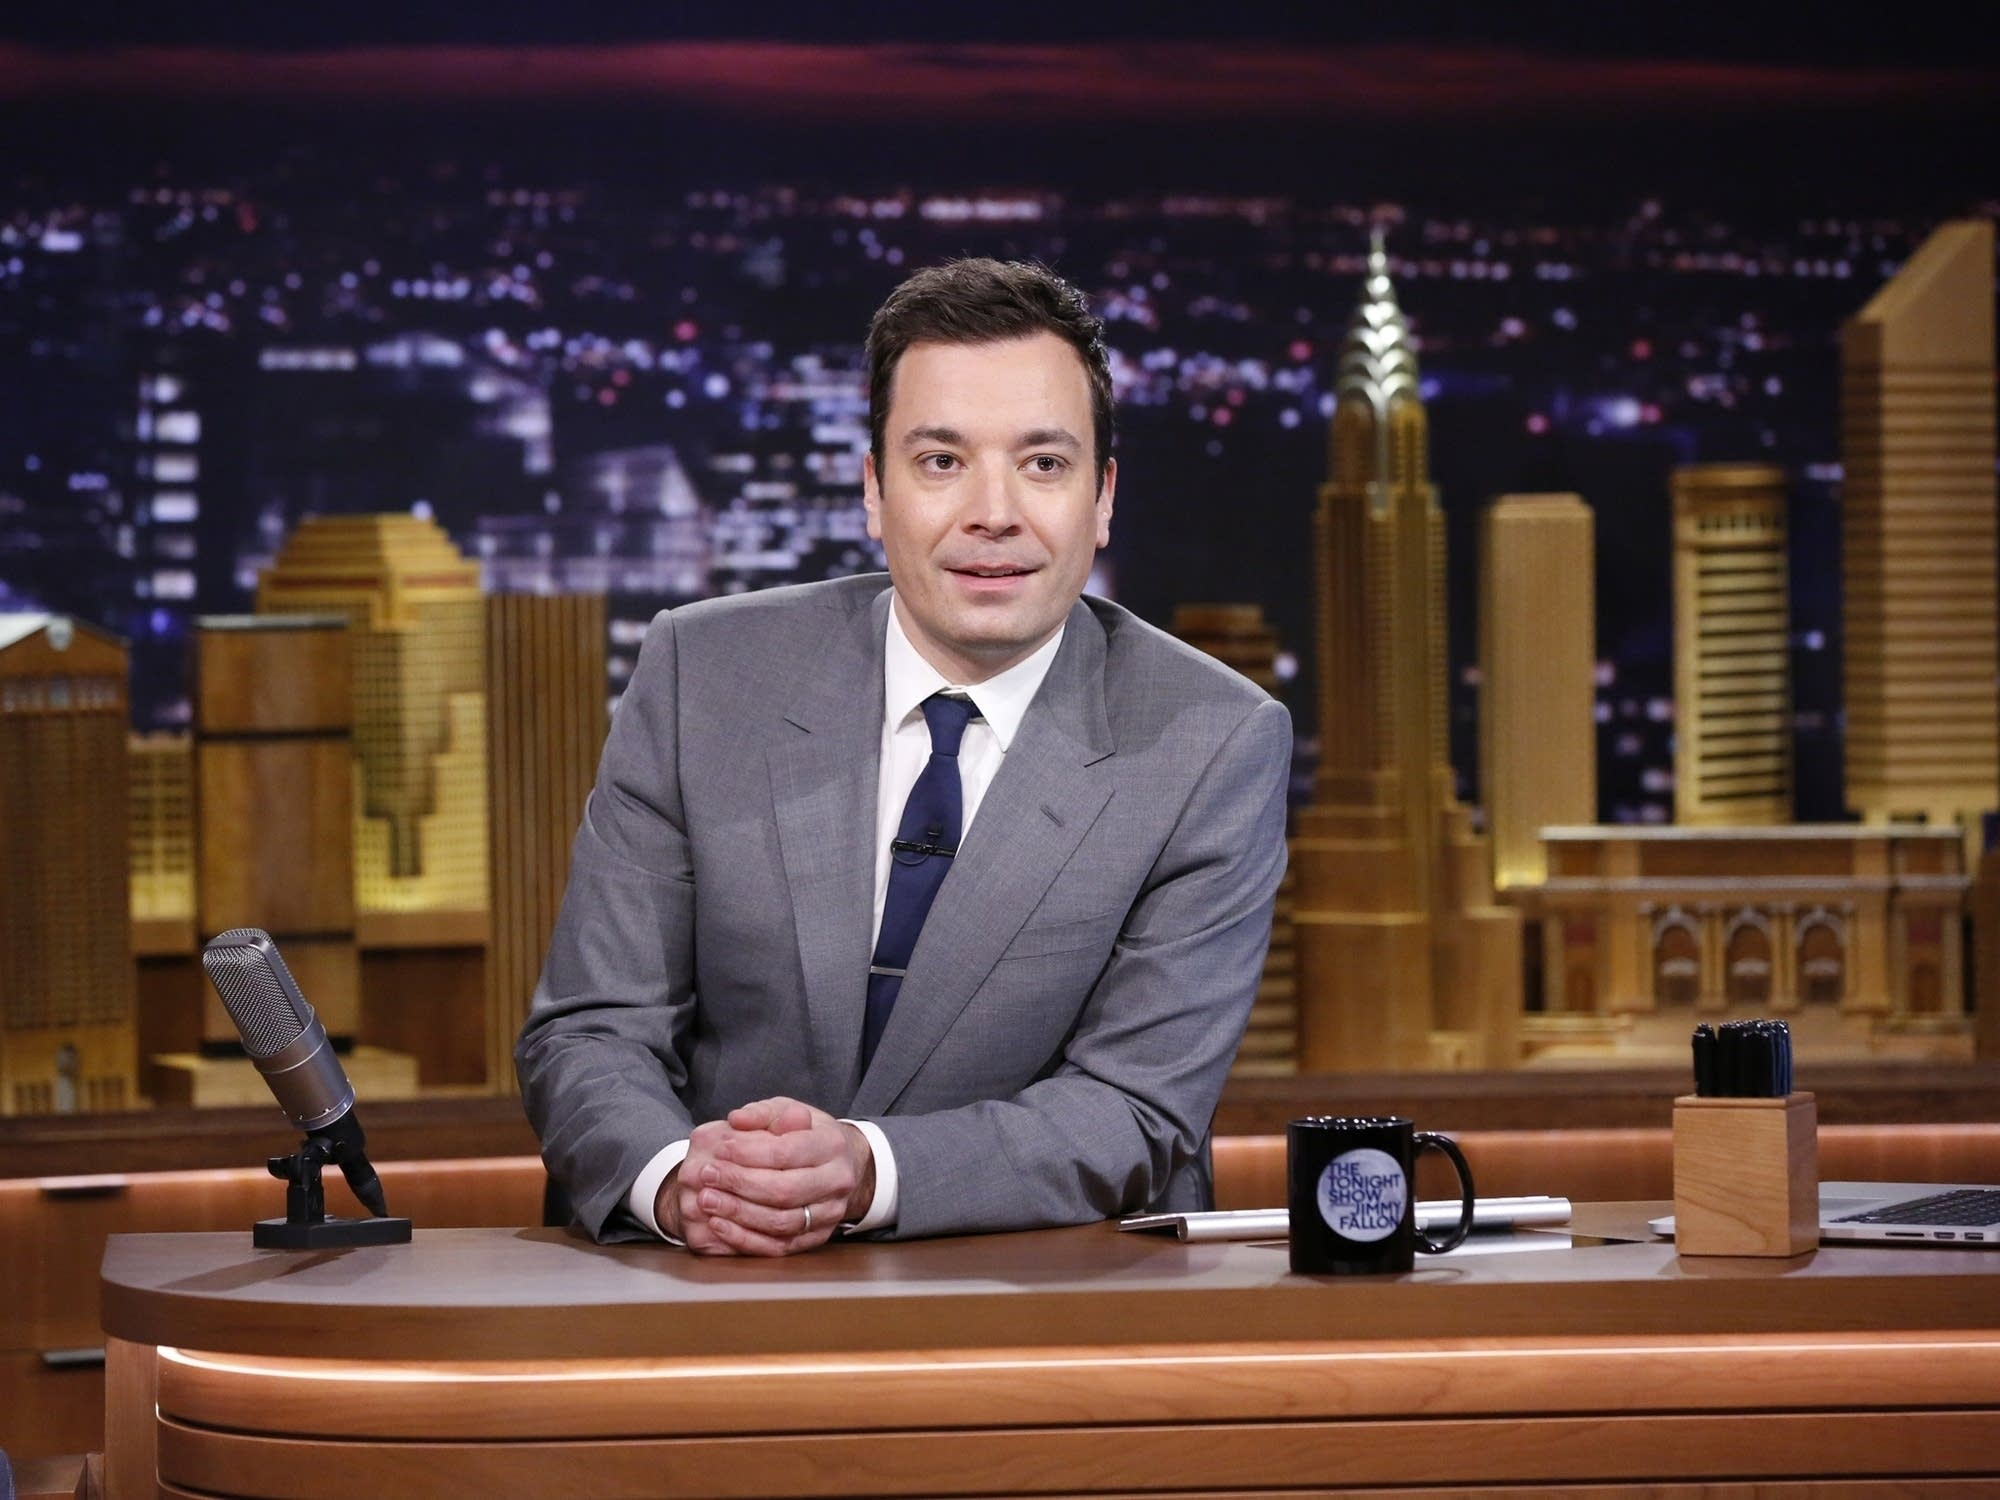 Jimmy Fallon Predicts The Super Bowl LII Champions - With Puppies